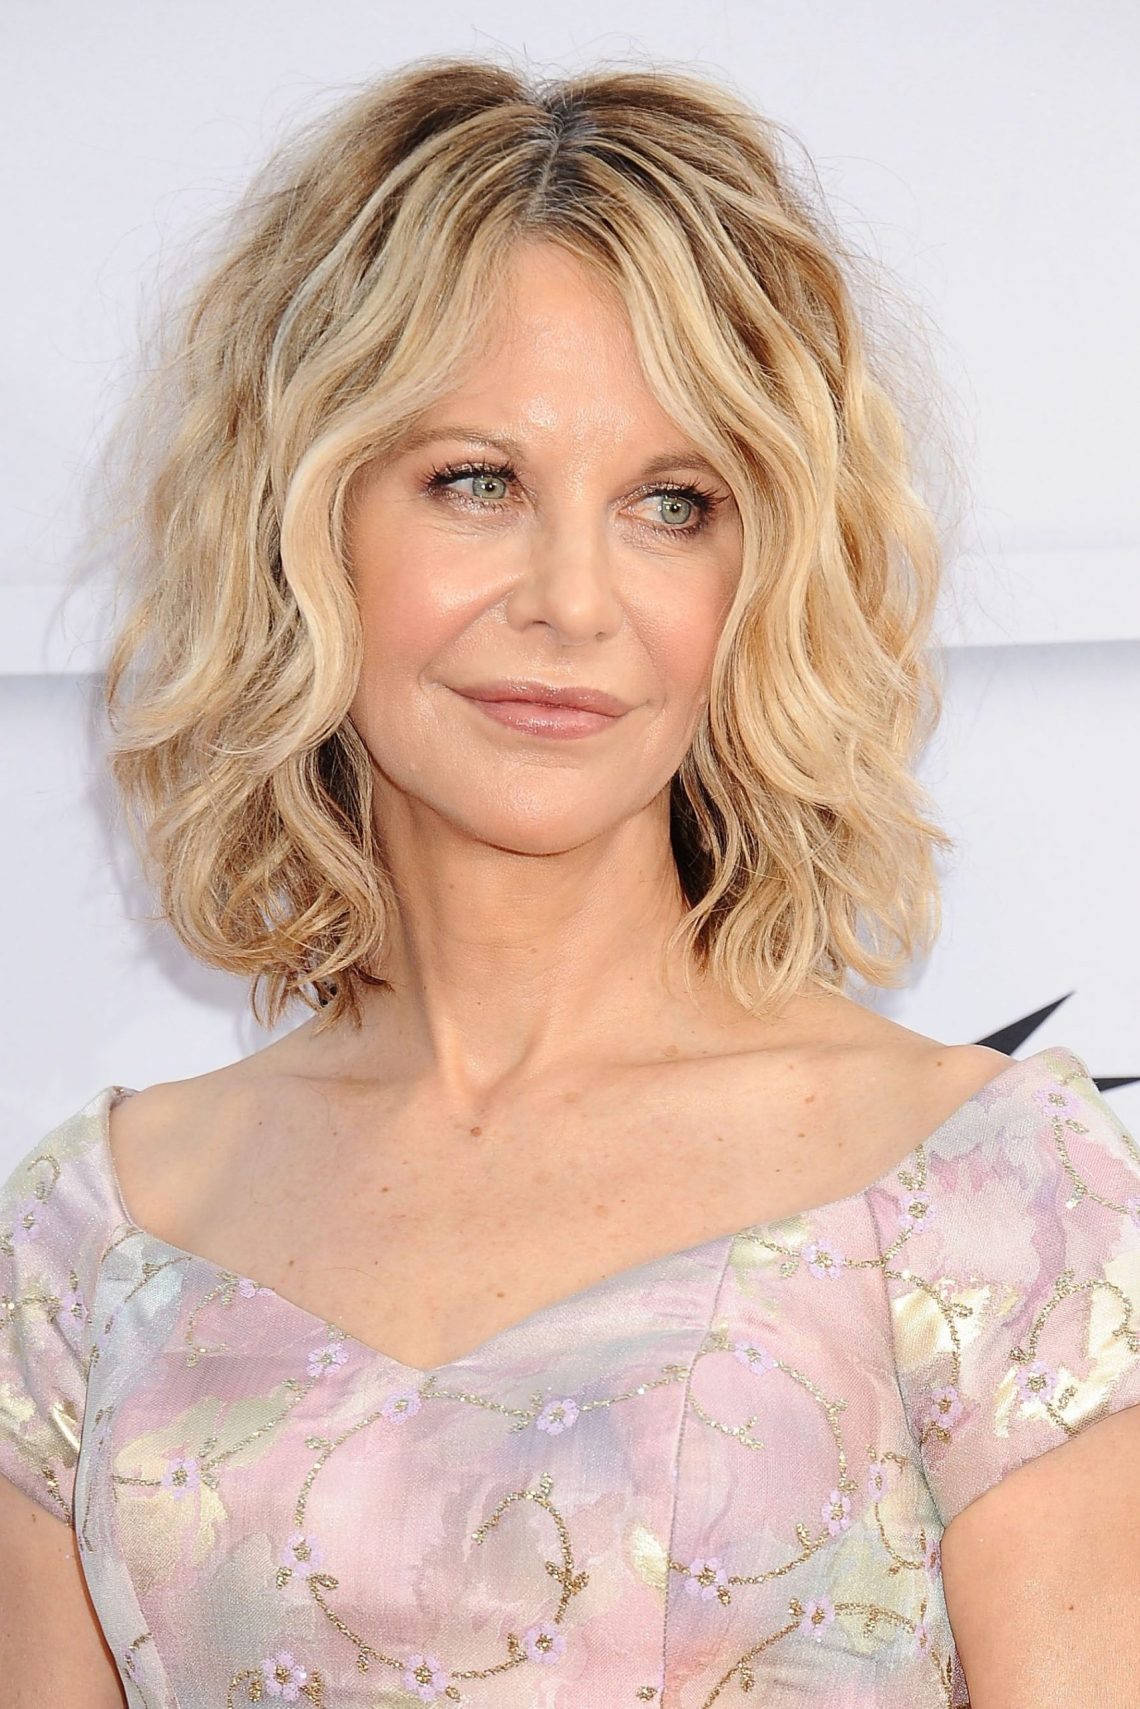 50 Best Hairstyles For Women Over 50 Celebrity Haircuts Medium Length Blonde Hairstyles For Over 50